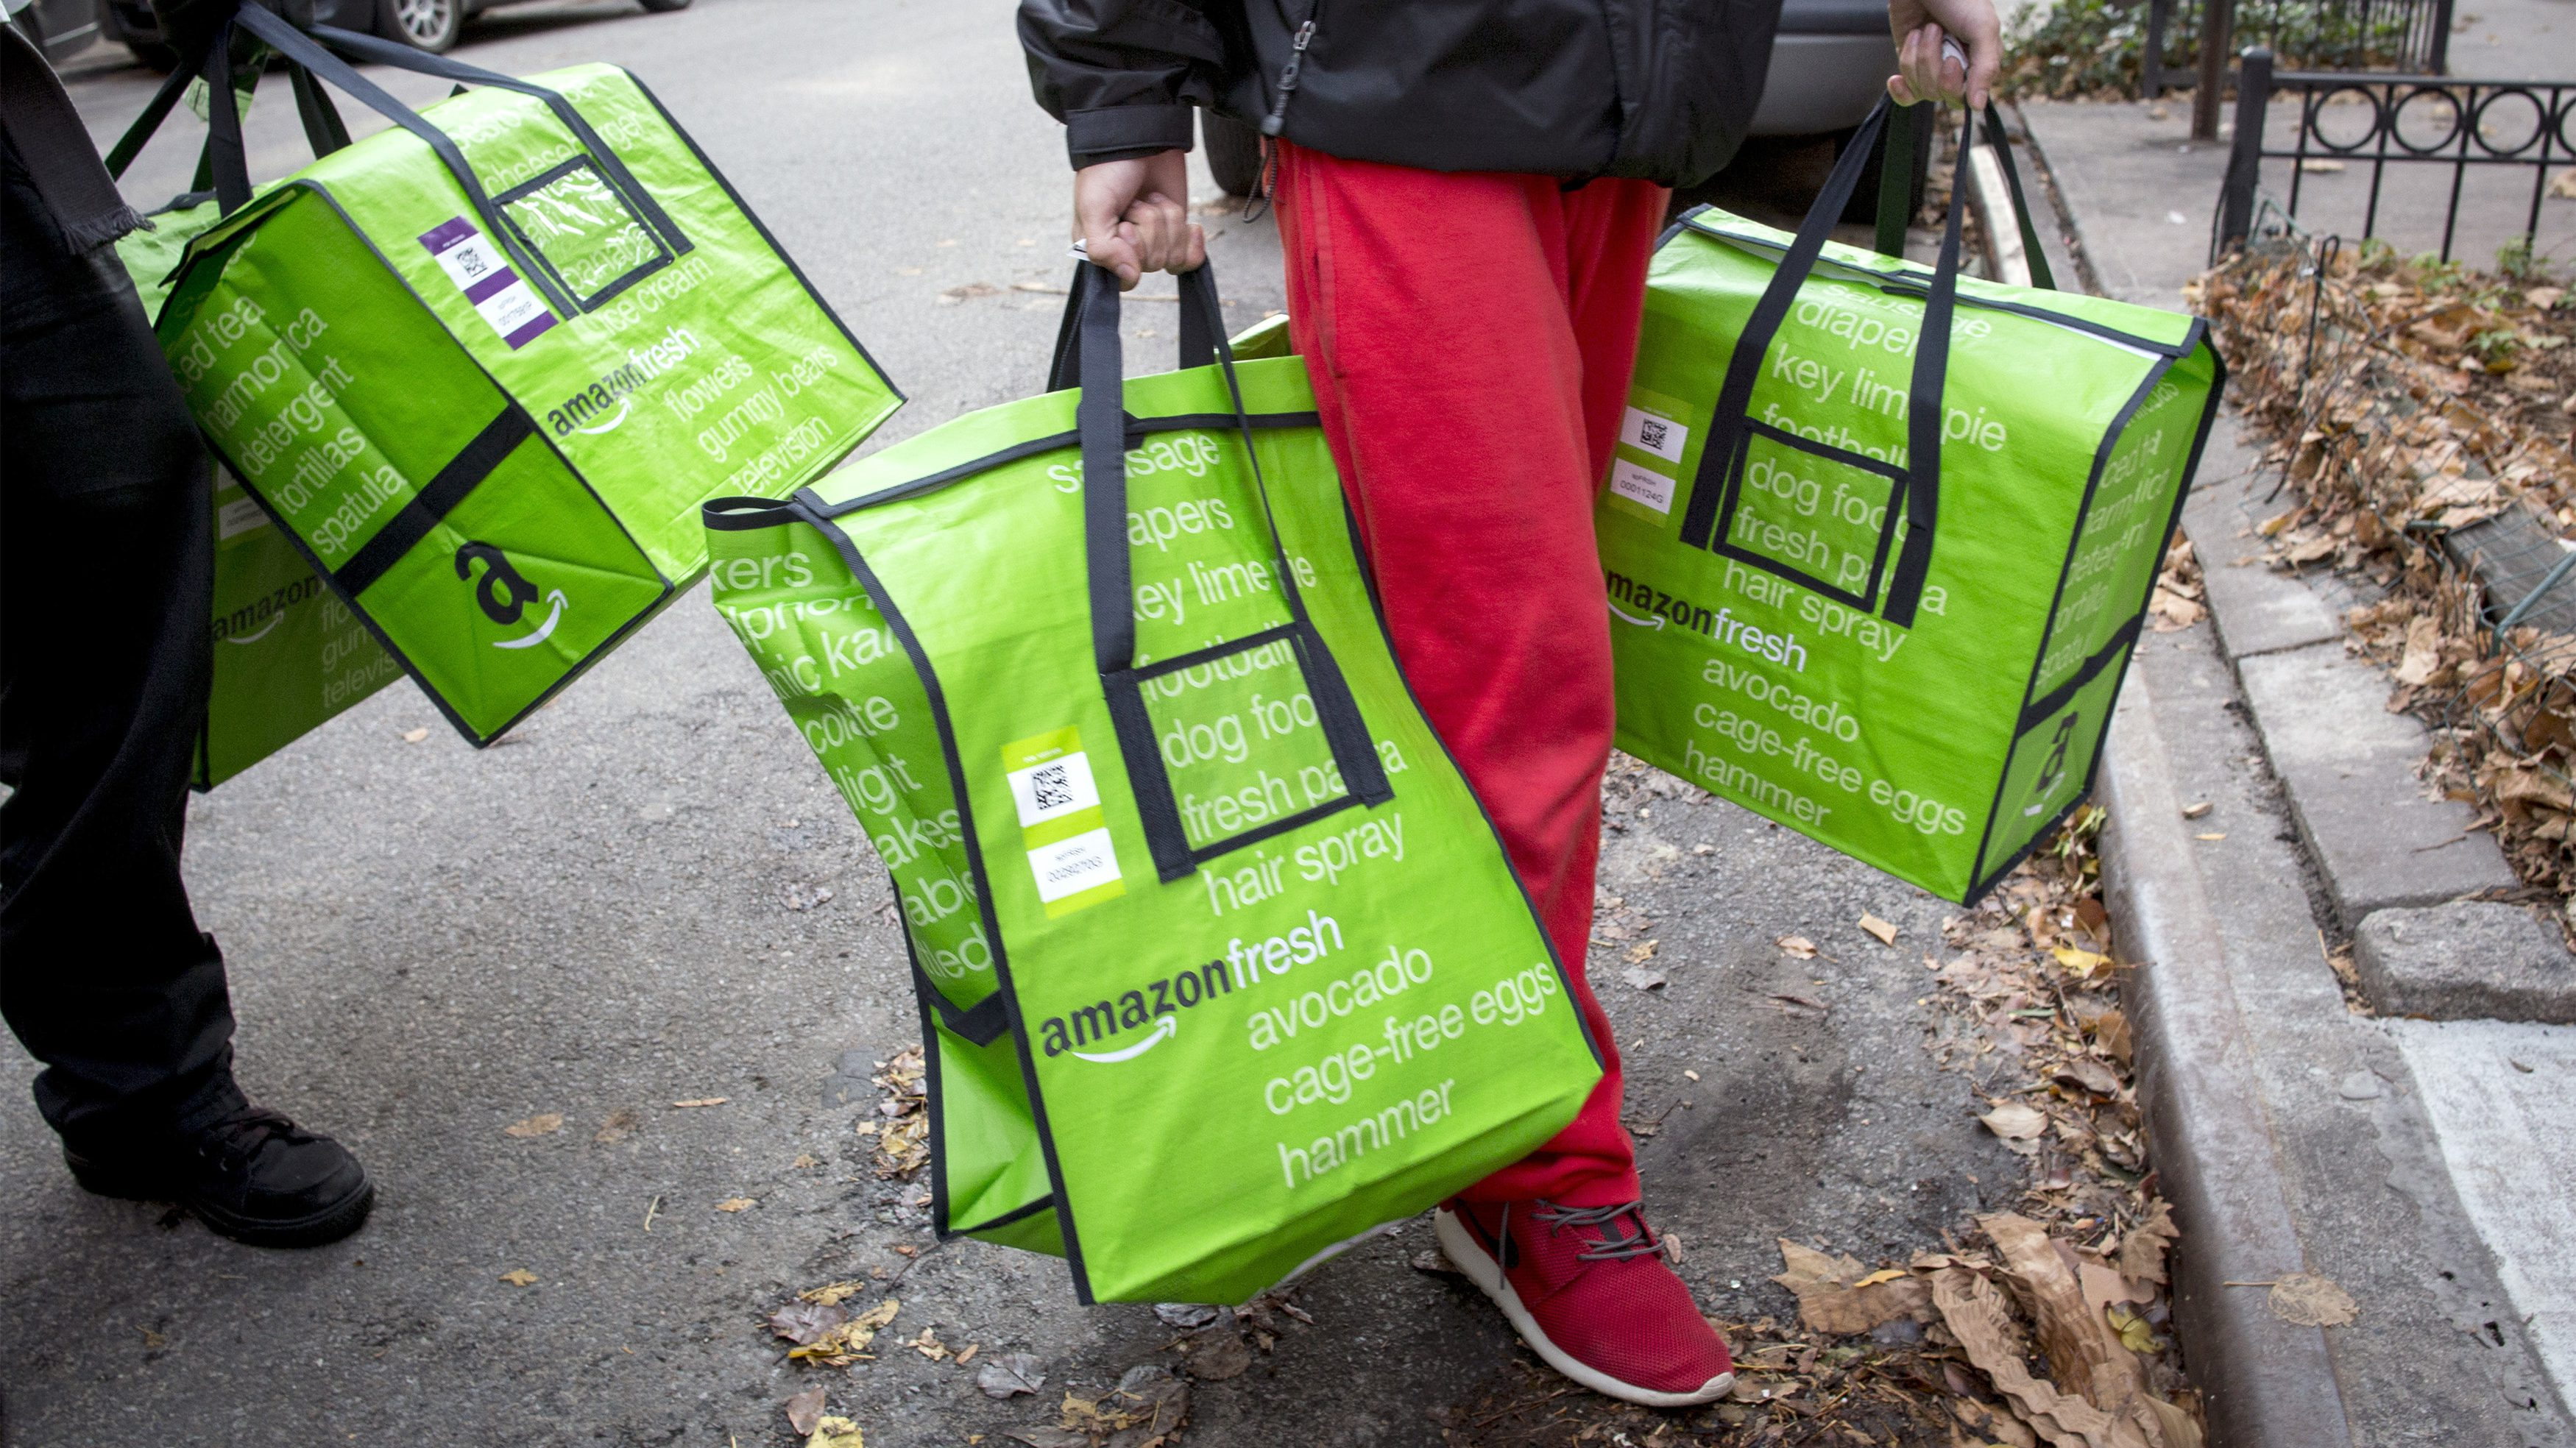 Amazon workers deliver groceries from the Amazon Fresh service in Brooklyn.